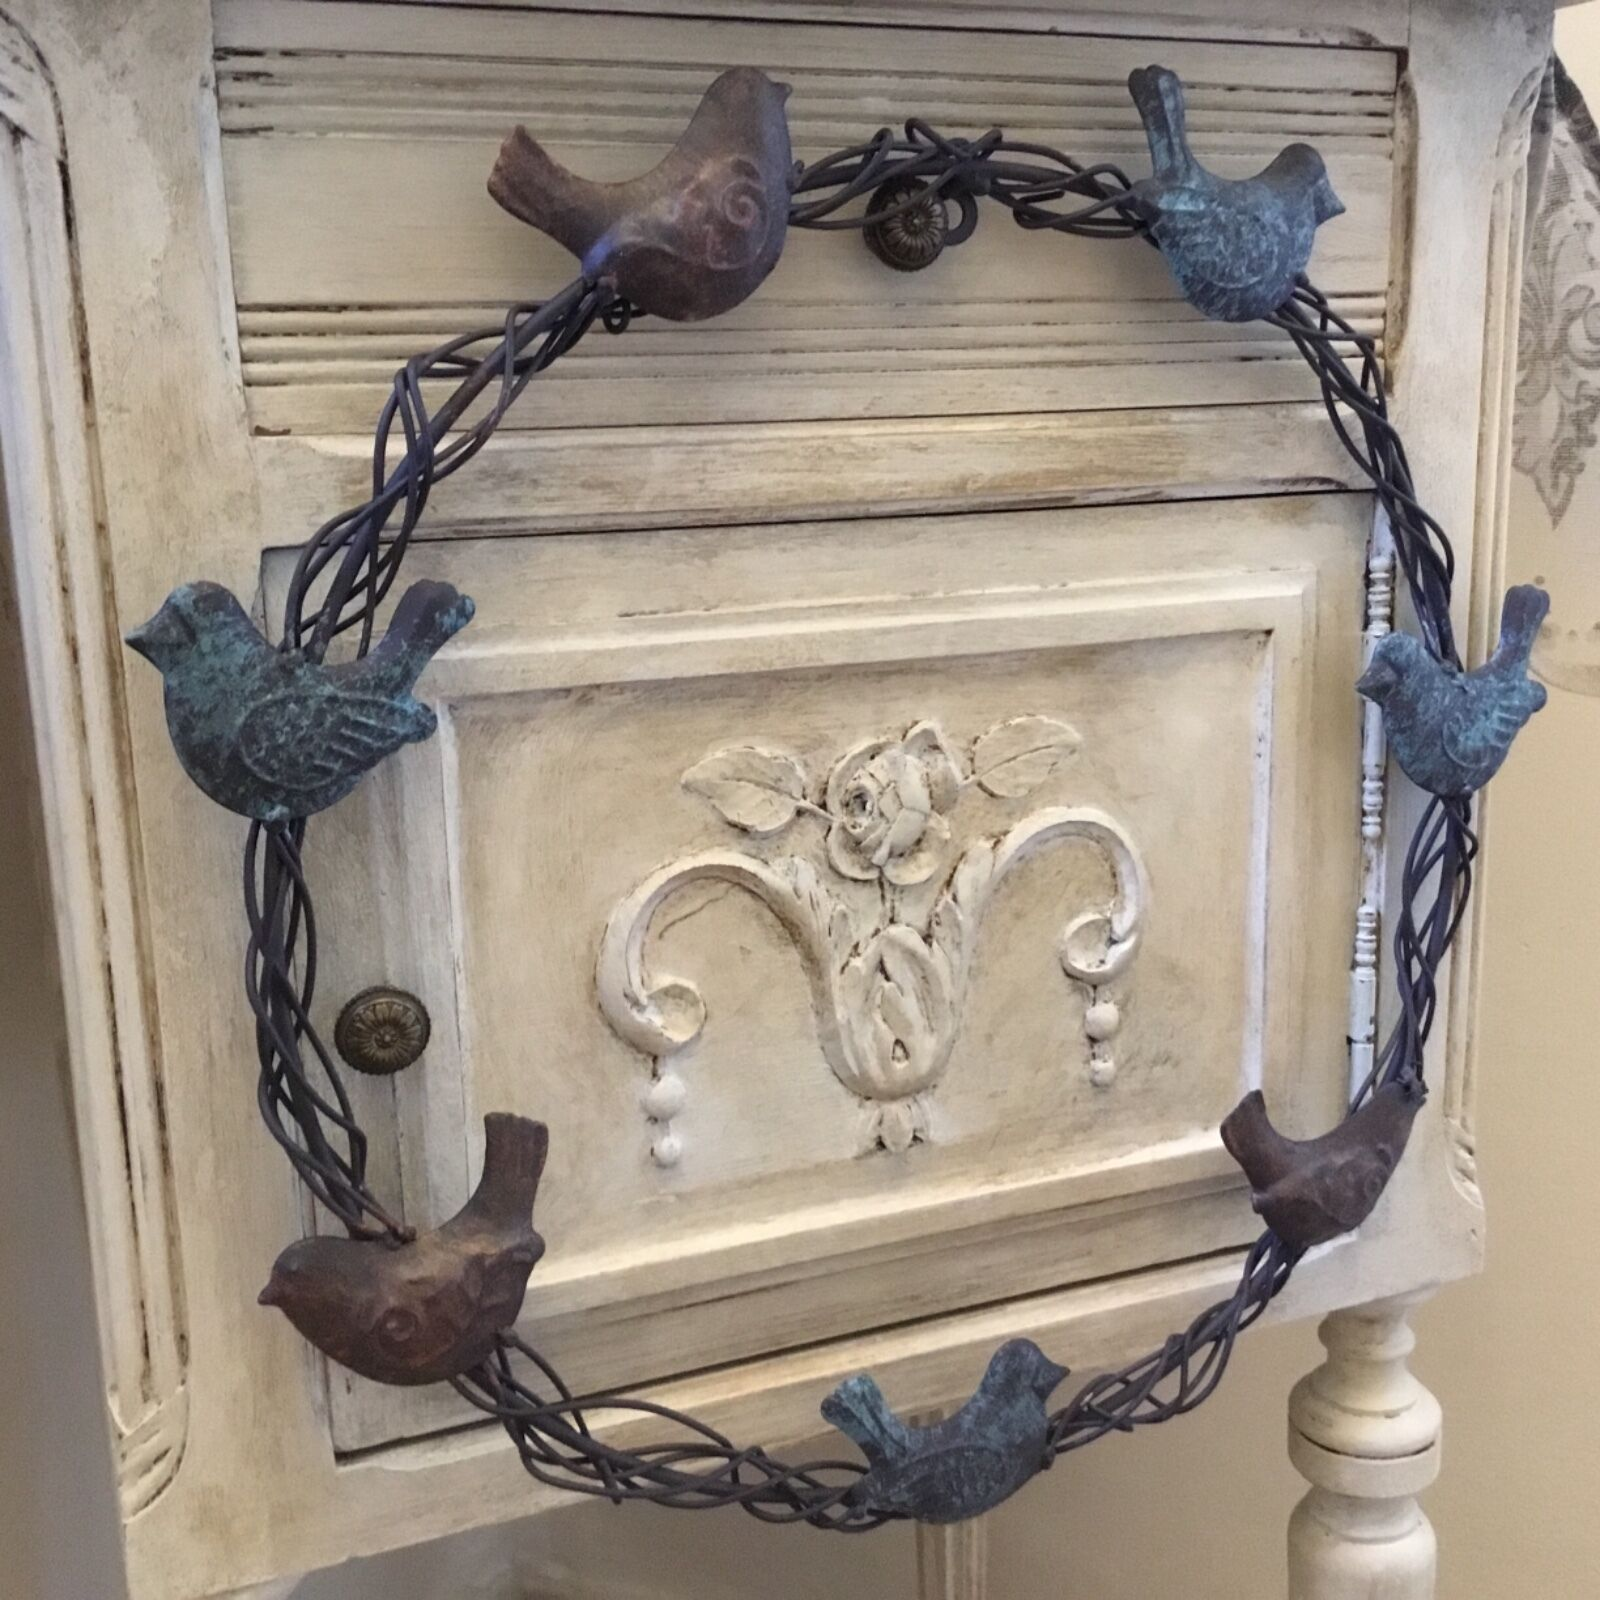 Hostess Gift Ideas Shabby Chic Metal Wreath Birds Vintage French Country